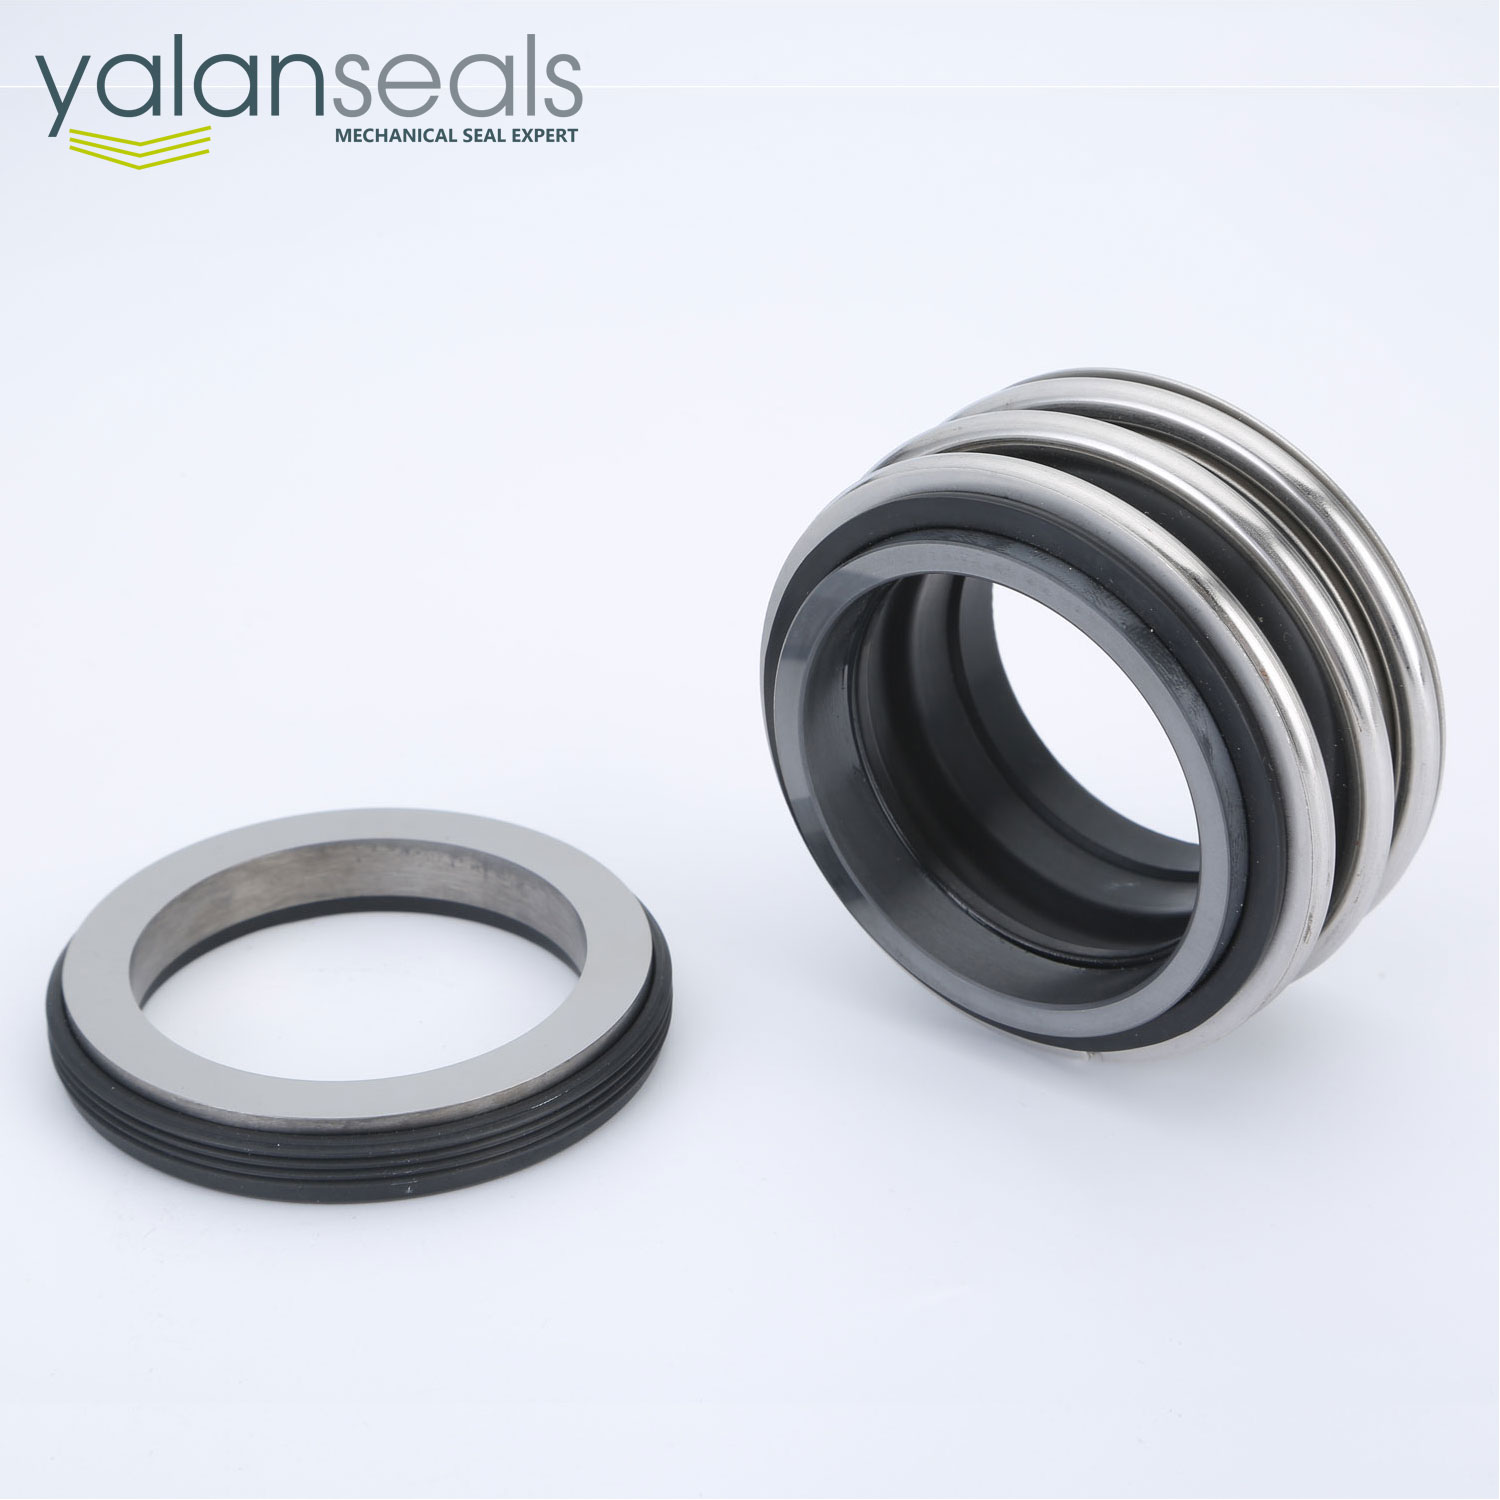 MG1 Elastomer Bellow Mechanical Seal